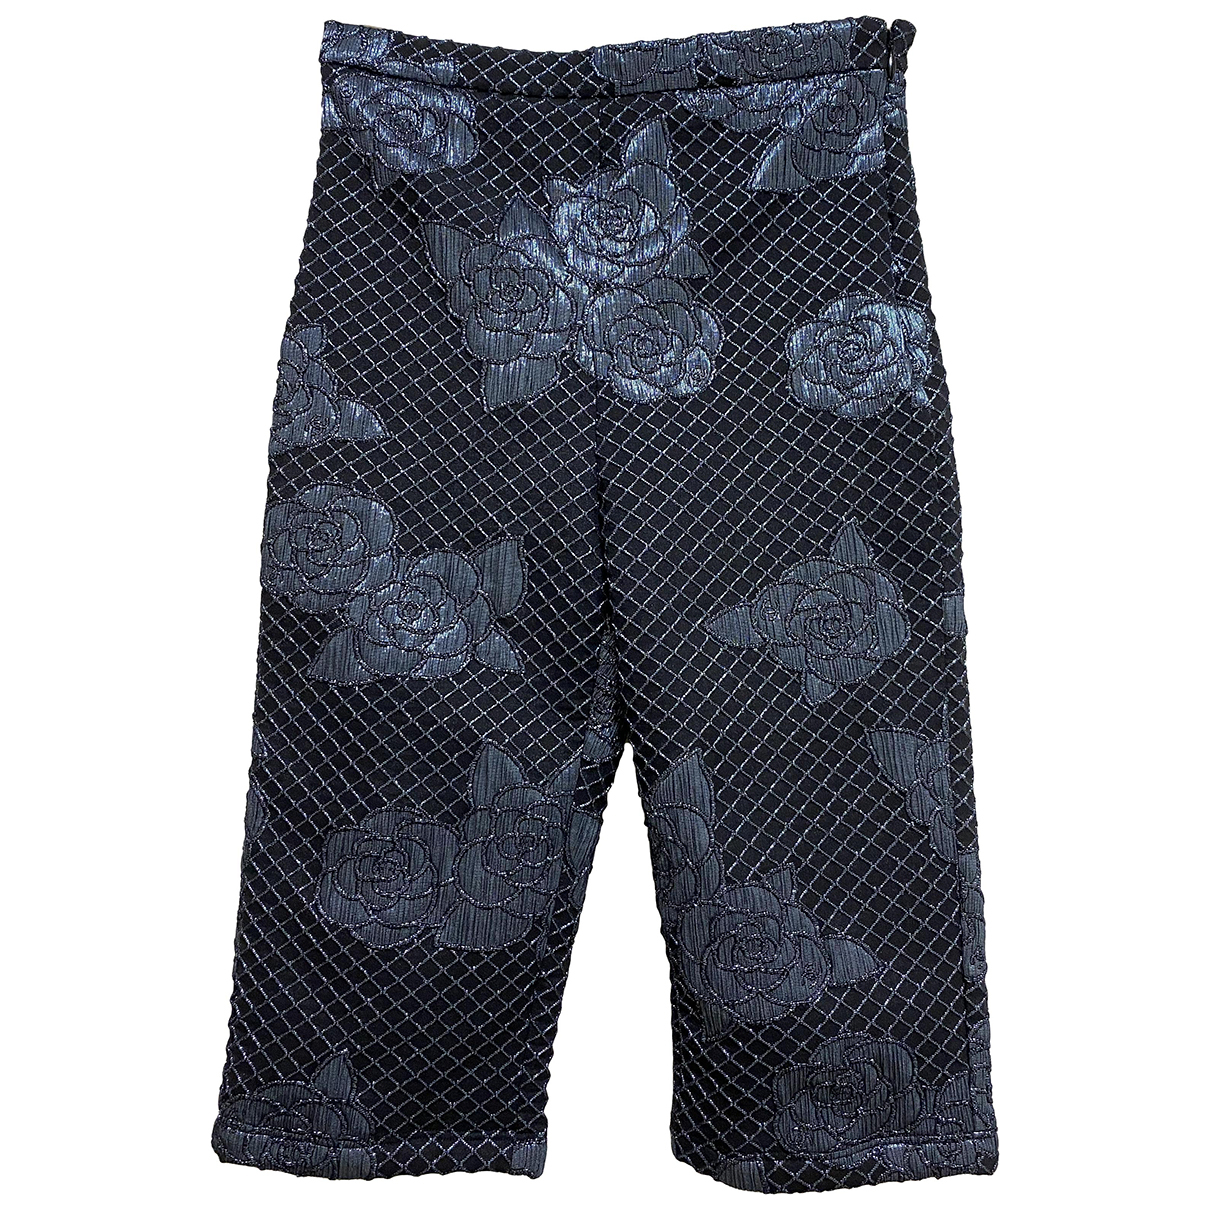 Chanel \N Shorts in  Marine Polyester